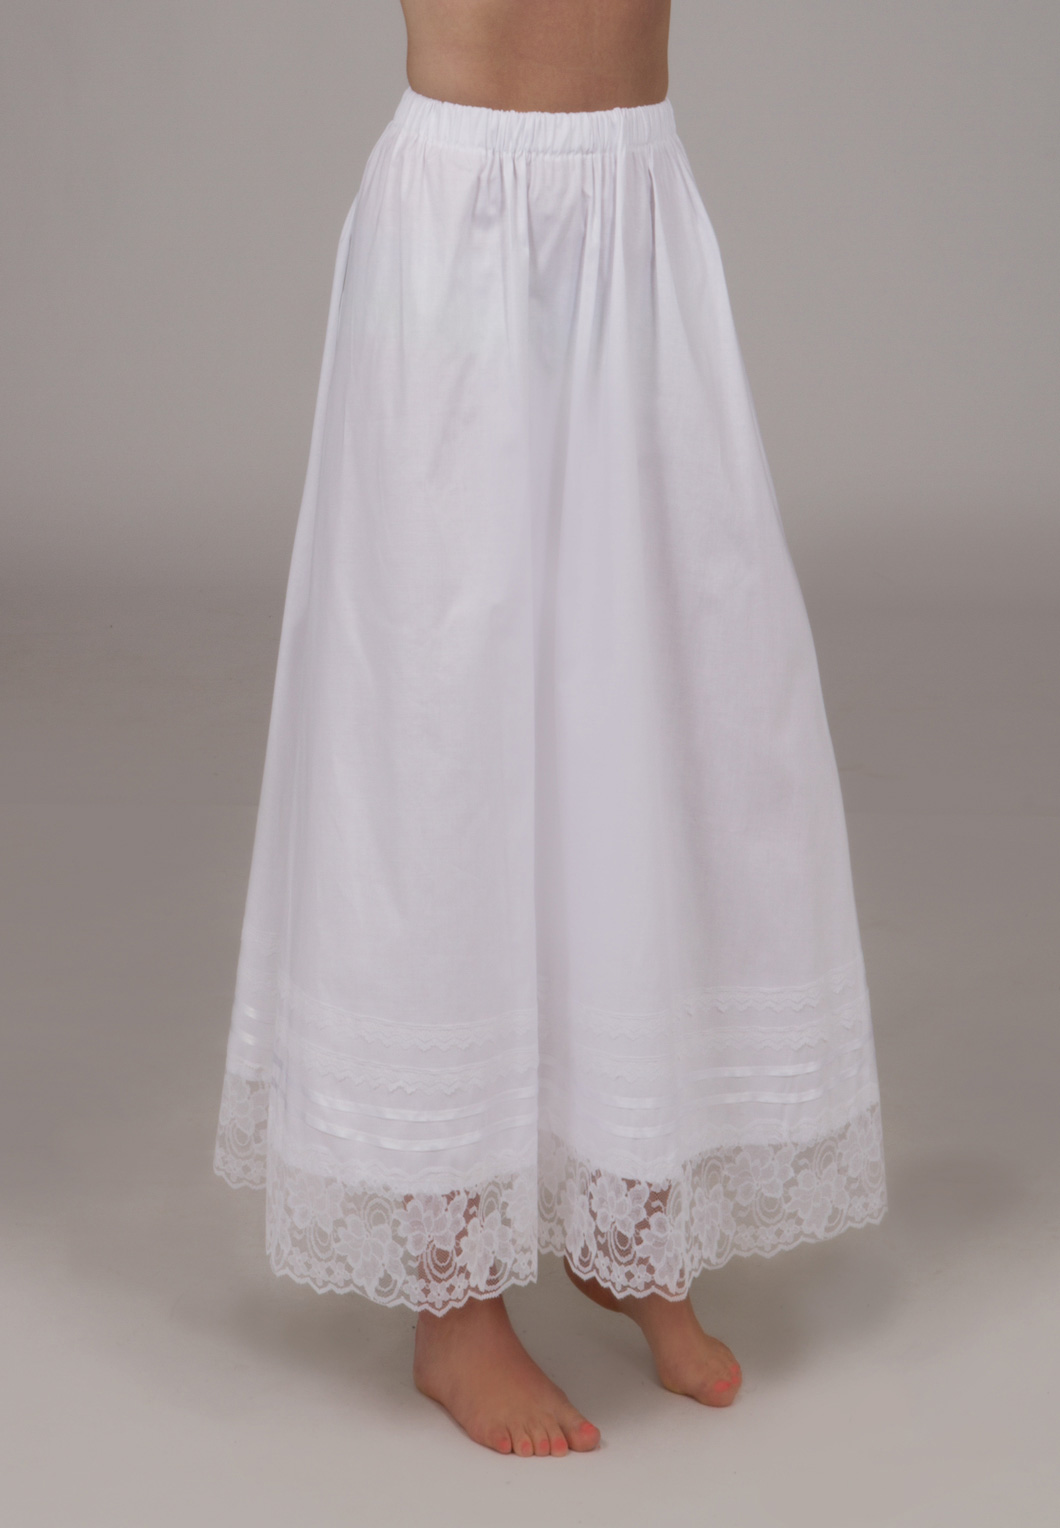 Victorian Cotton Skirt Petticoat